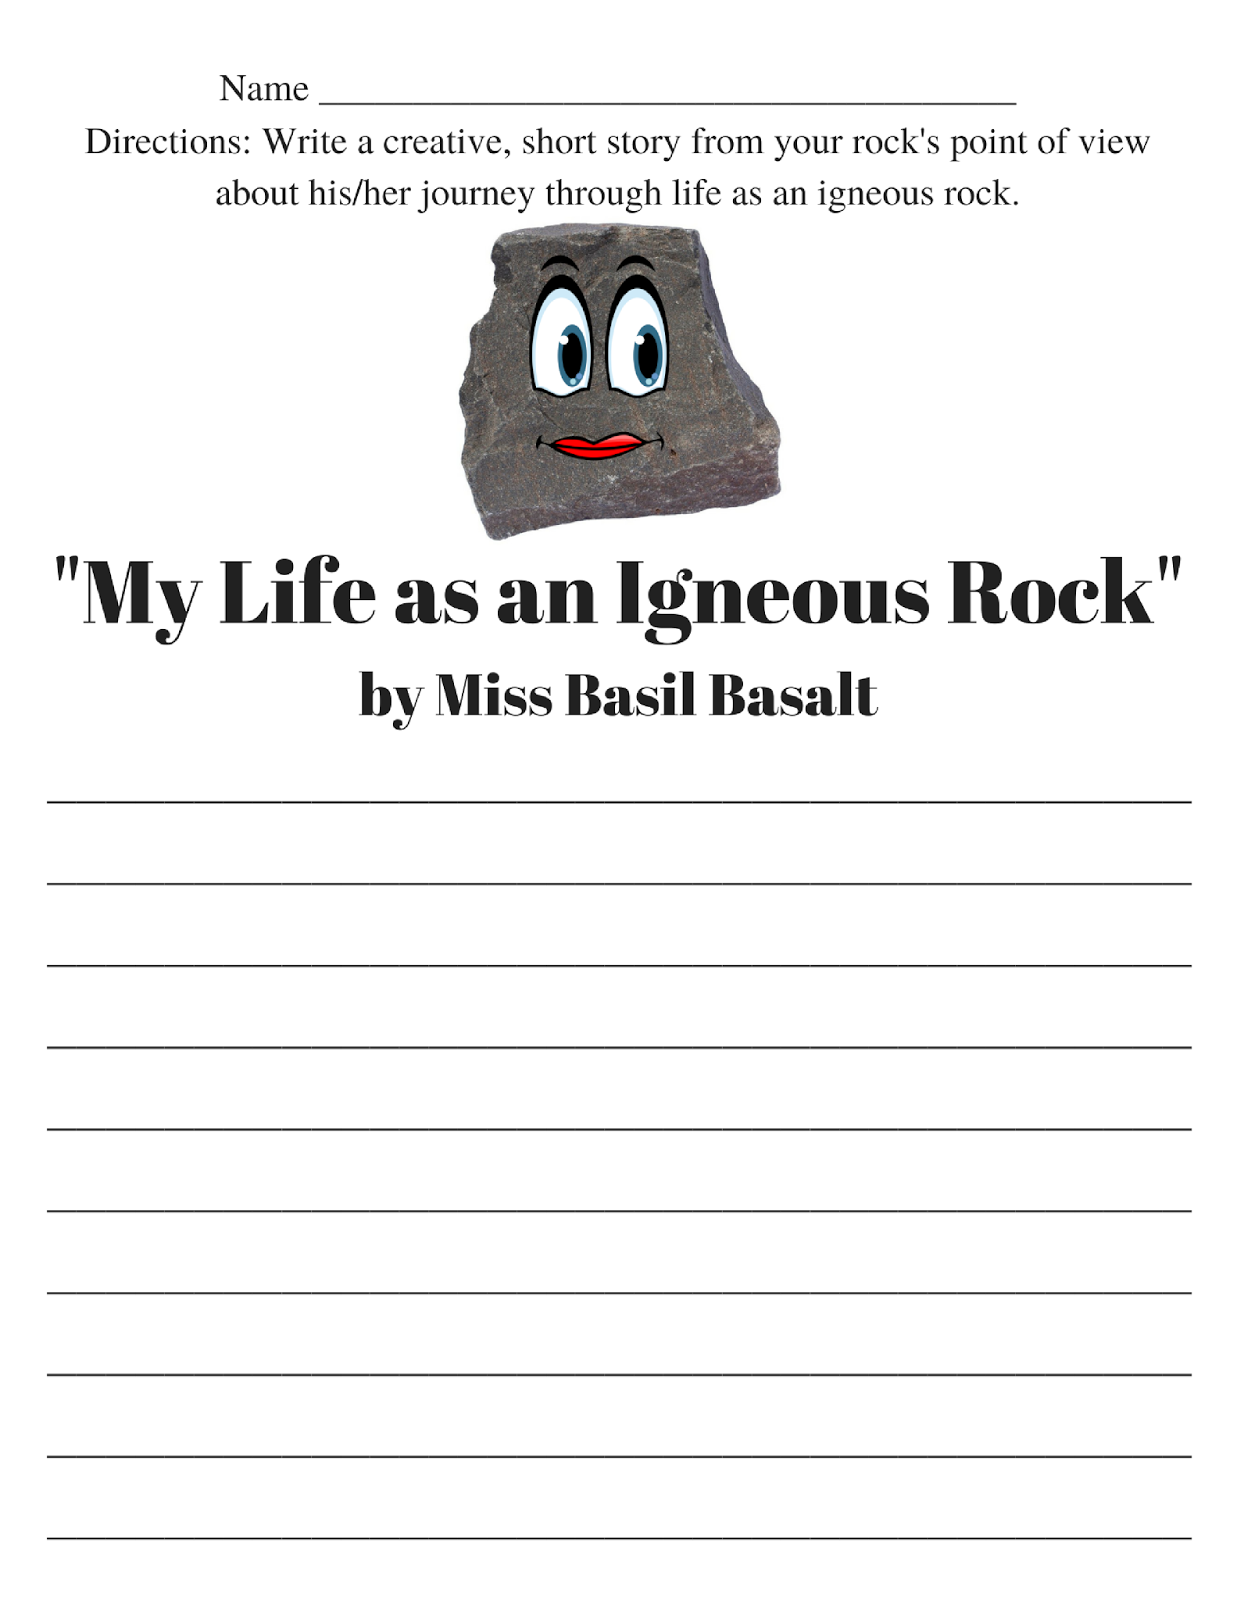 Spark and All Igneous Rocks – Igneous Rocks Worksheet